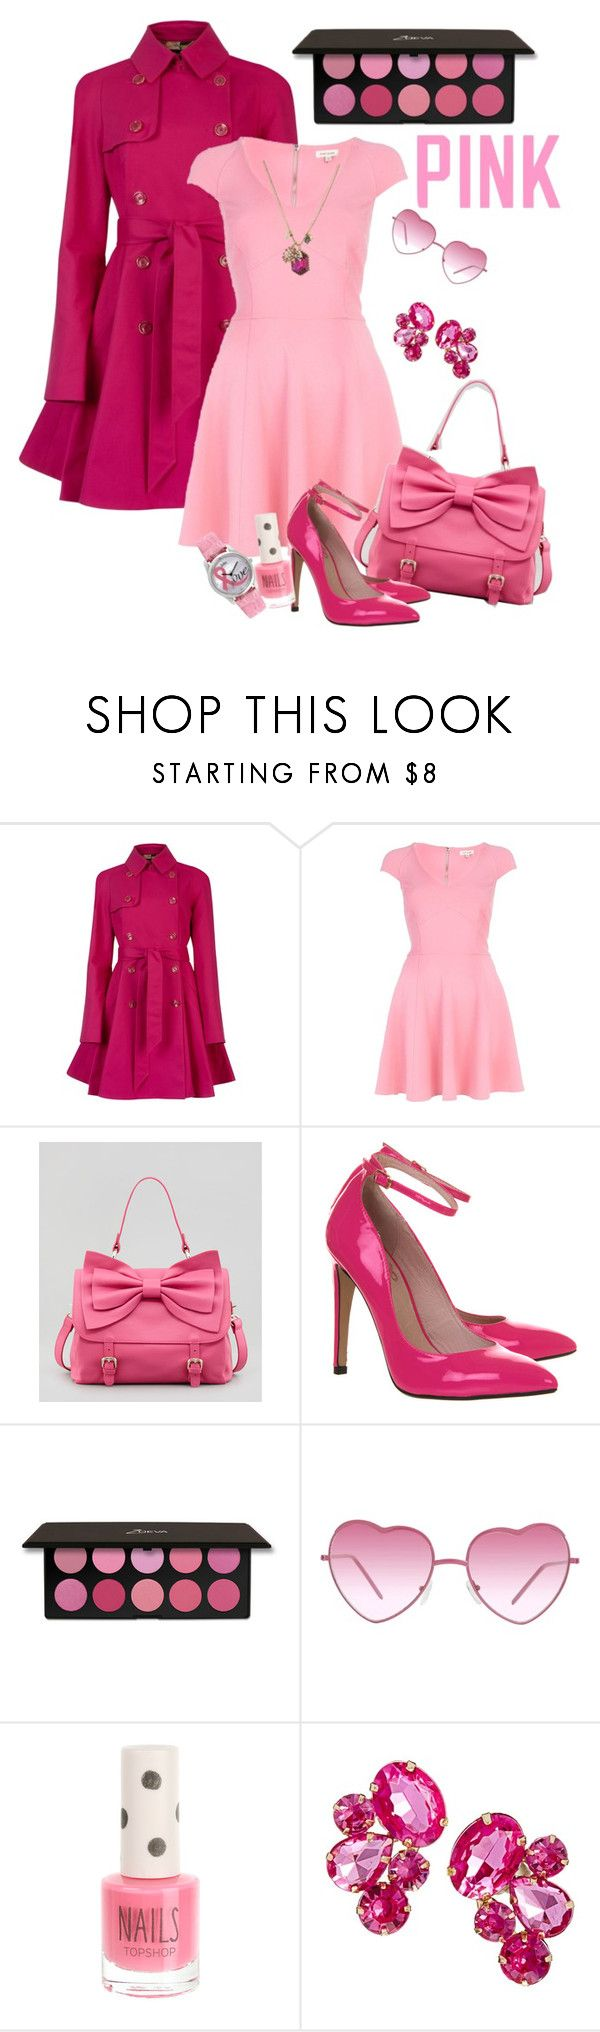 """""""Think about PINK...."""" by glitterlady4 ❤ liked on Polyvore featuring Ted Baker, River Island, RED Valentino, Office, Almost Famous, Topshop, ASOS, Jolie, Betsey Johnson and Victoria's Secret PINK"""